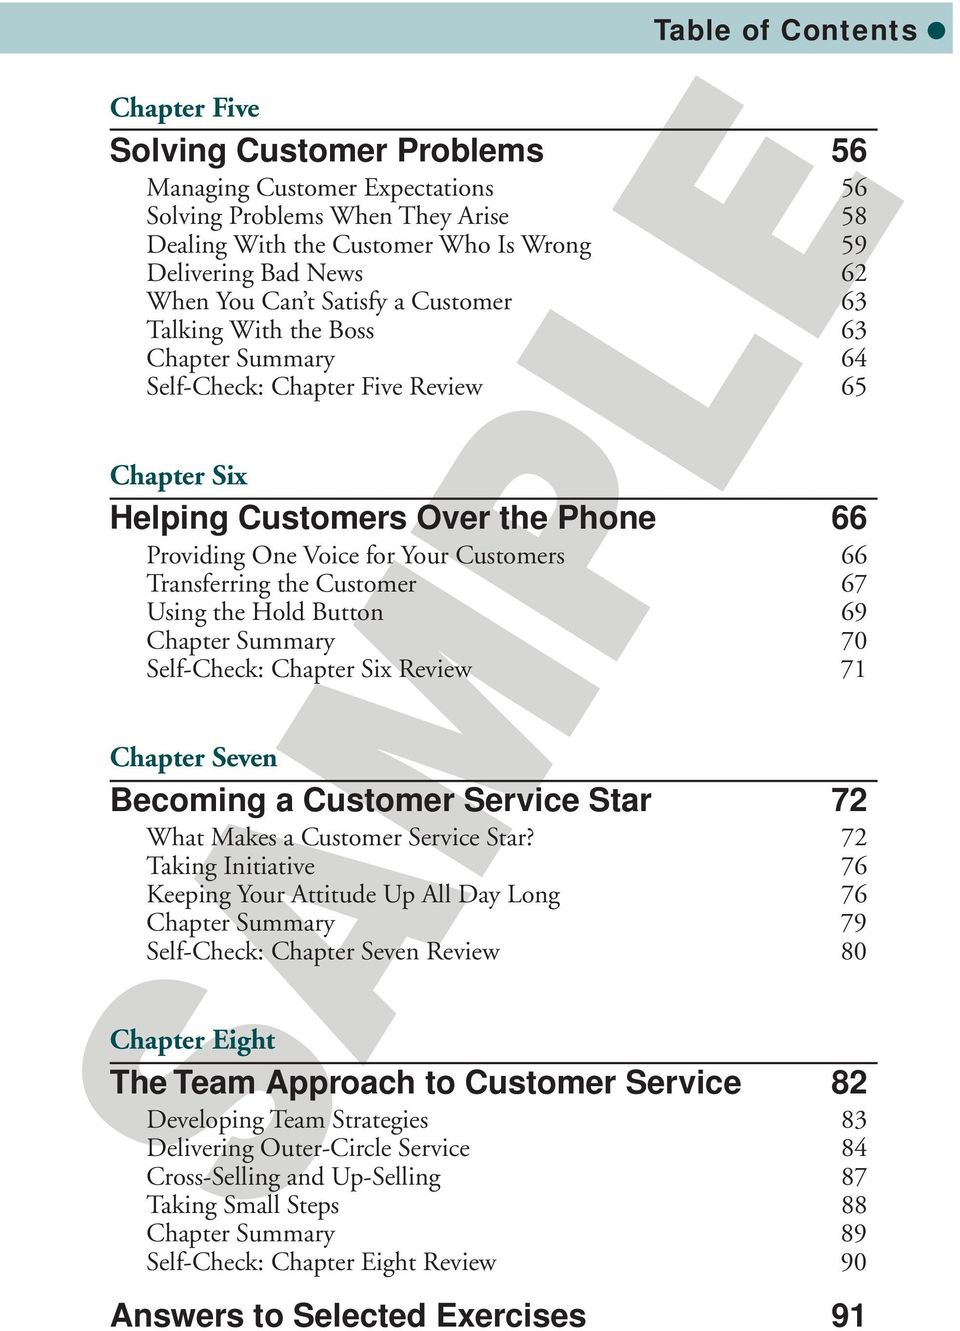 66 Transferring the Customer 67 Using the Hold Button 69 Chapter Summary 70 Self-Check: Chapter Six Review 71 Chapter Seven Becoming a Customer Service Star 72 What Makes a Customer Service Star?